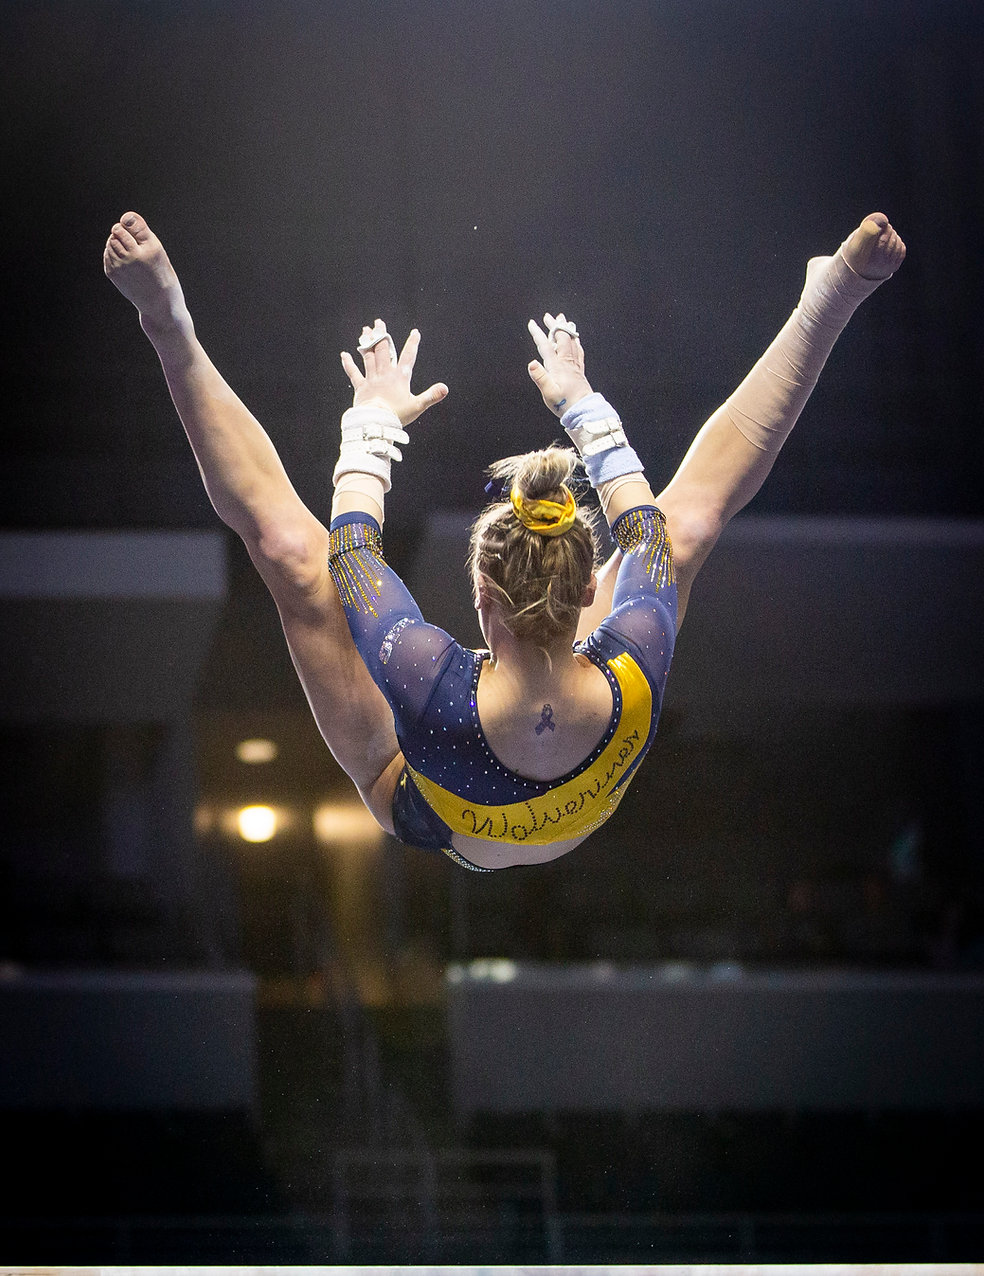 Freshman Abby Brenner flips during her uneven bars routine at the Elevate the Stage meet, where the entire team scored 9.900 or higher, the second highest combined score in program history.